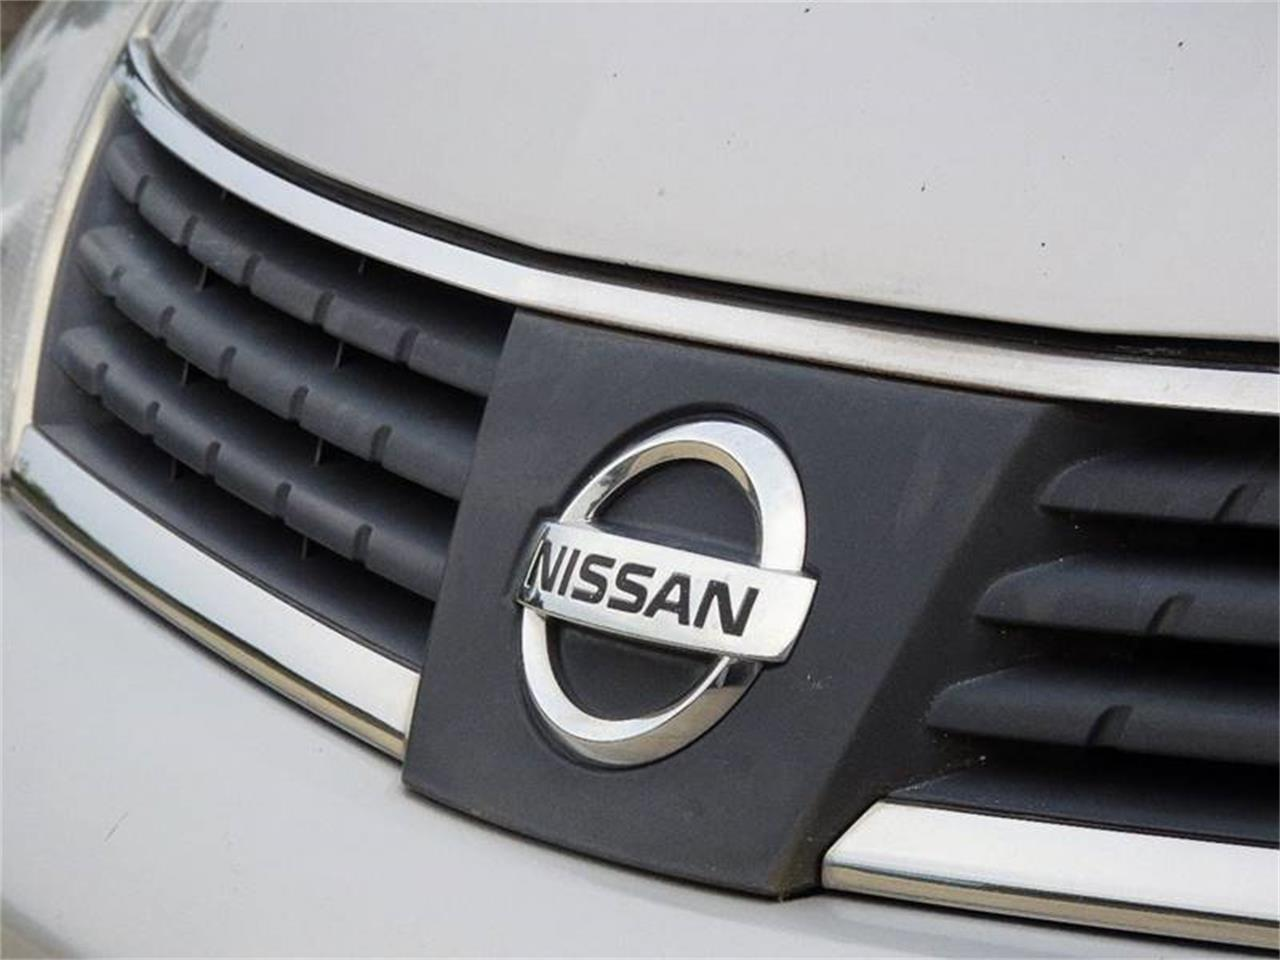 2007 Nissan Versa for sale in Hilton, NY – photo 28